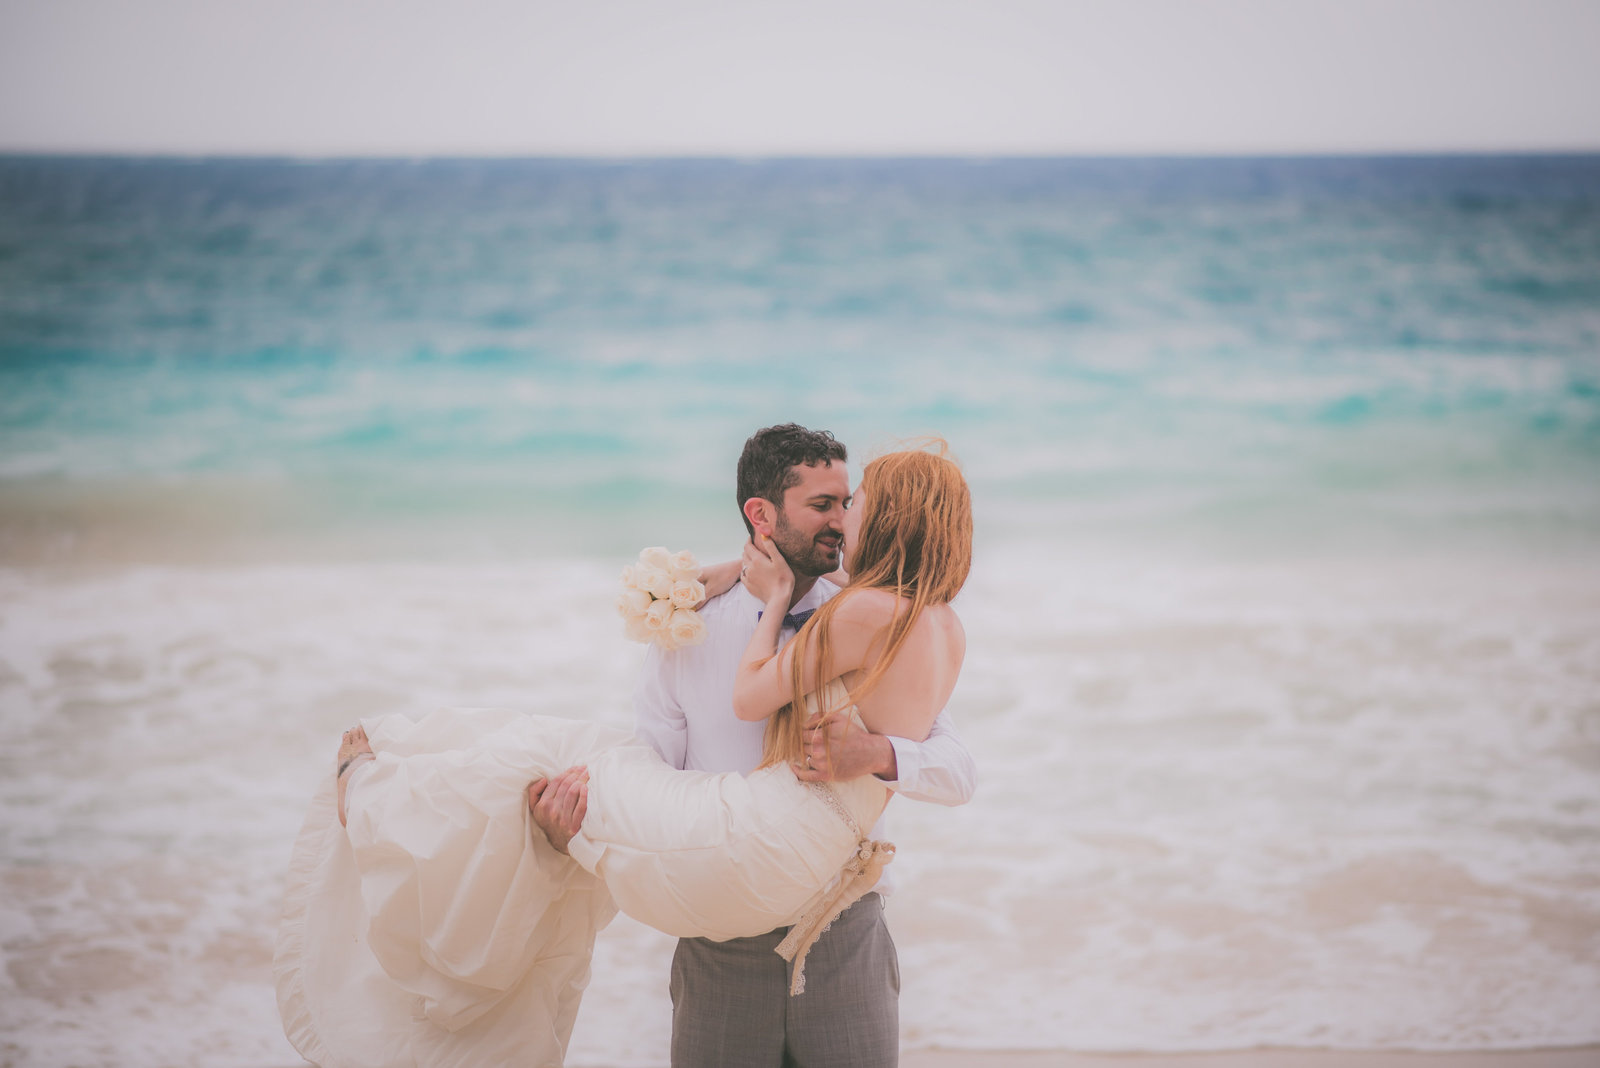 Groom holds bride on Hawaii beach while their faces get close.